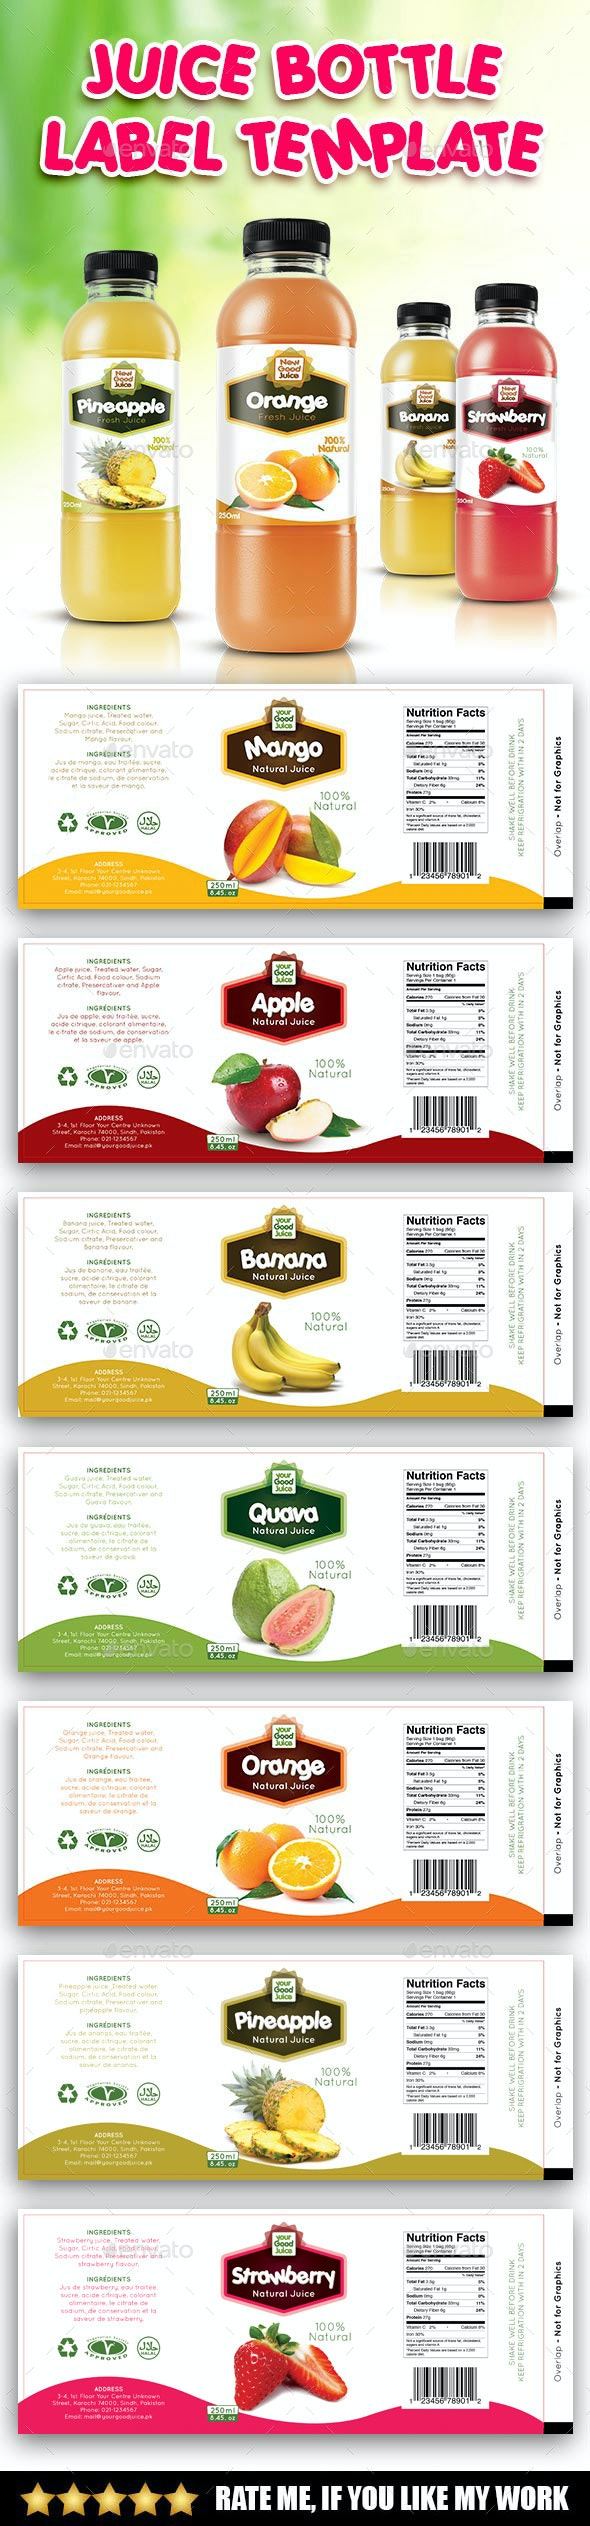 Juice Bottle Label Template - Packaging Print Templates